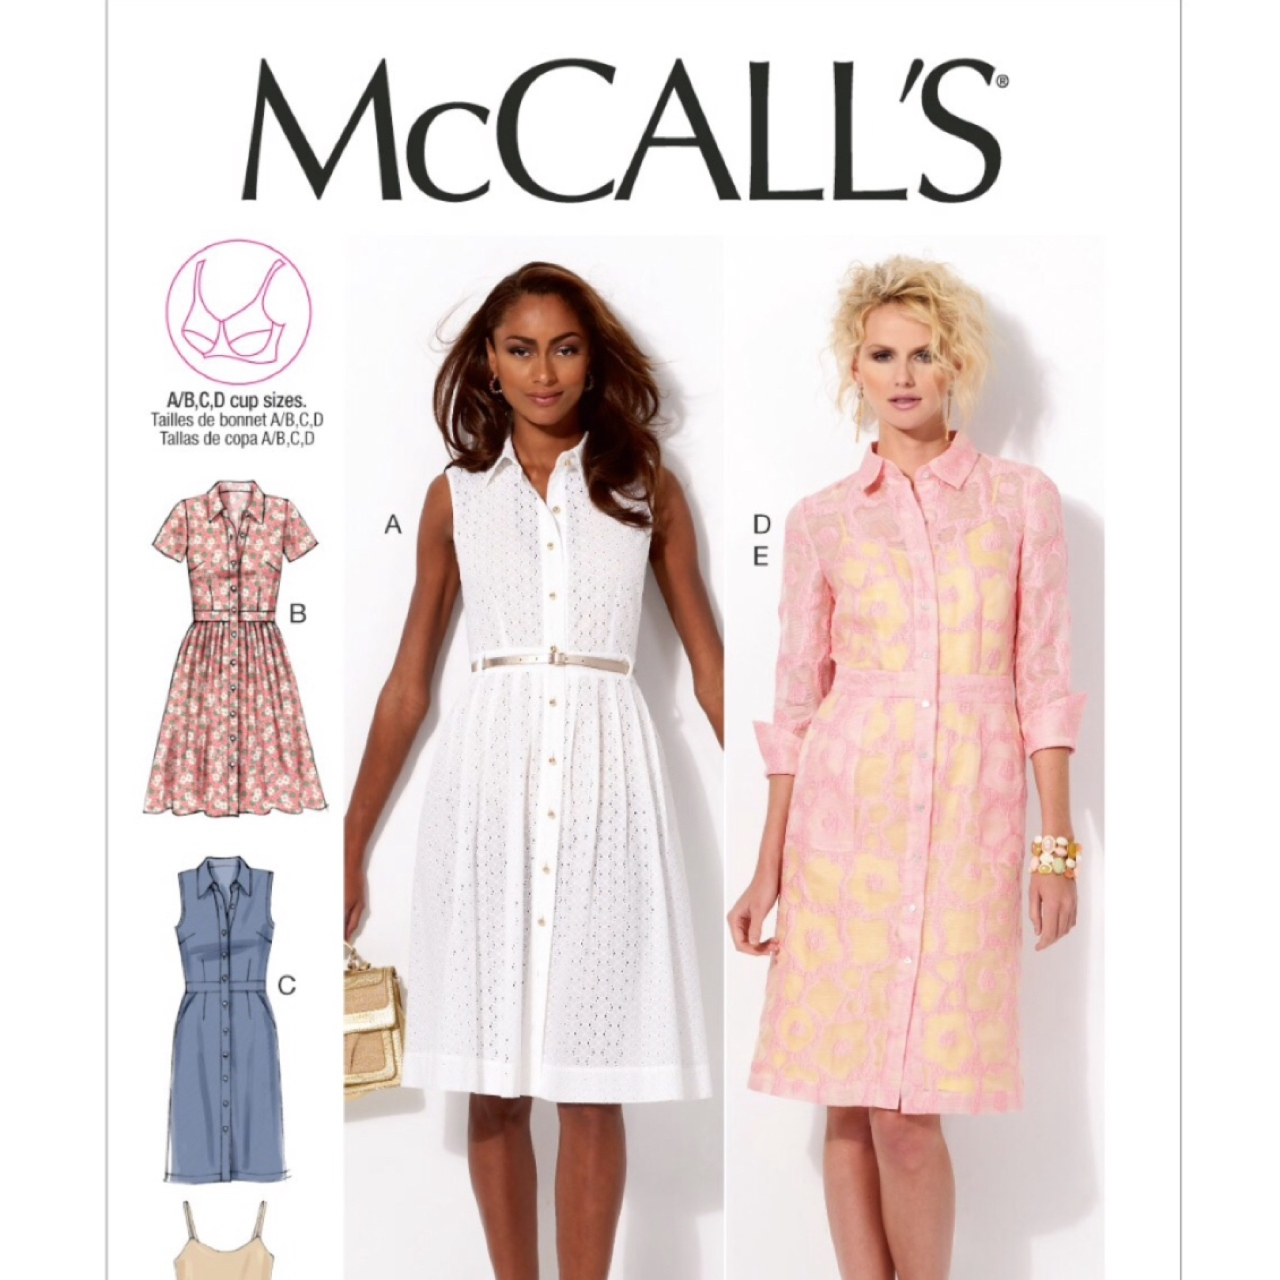 Mccalls shirtdress